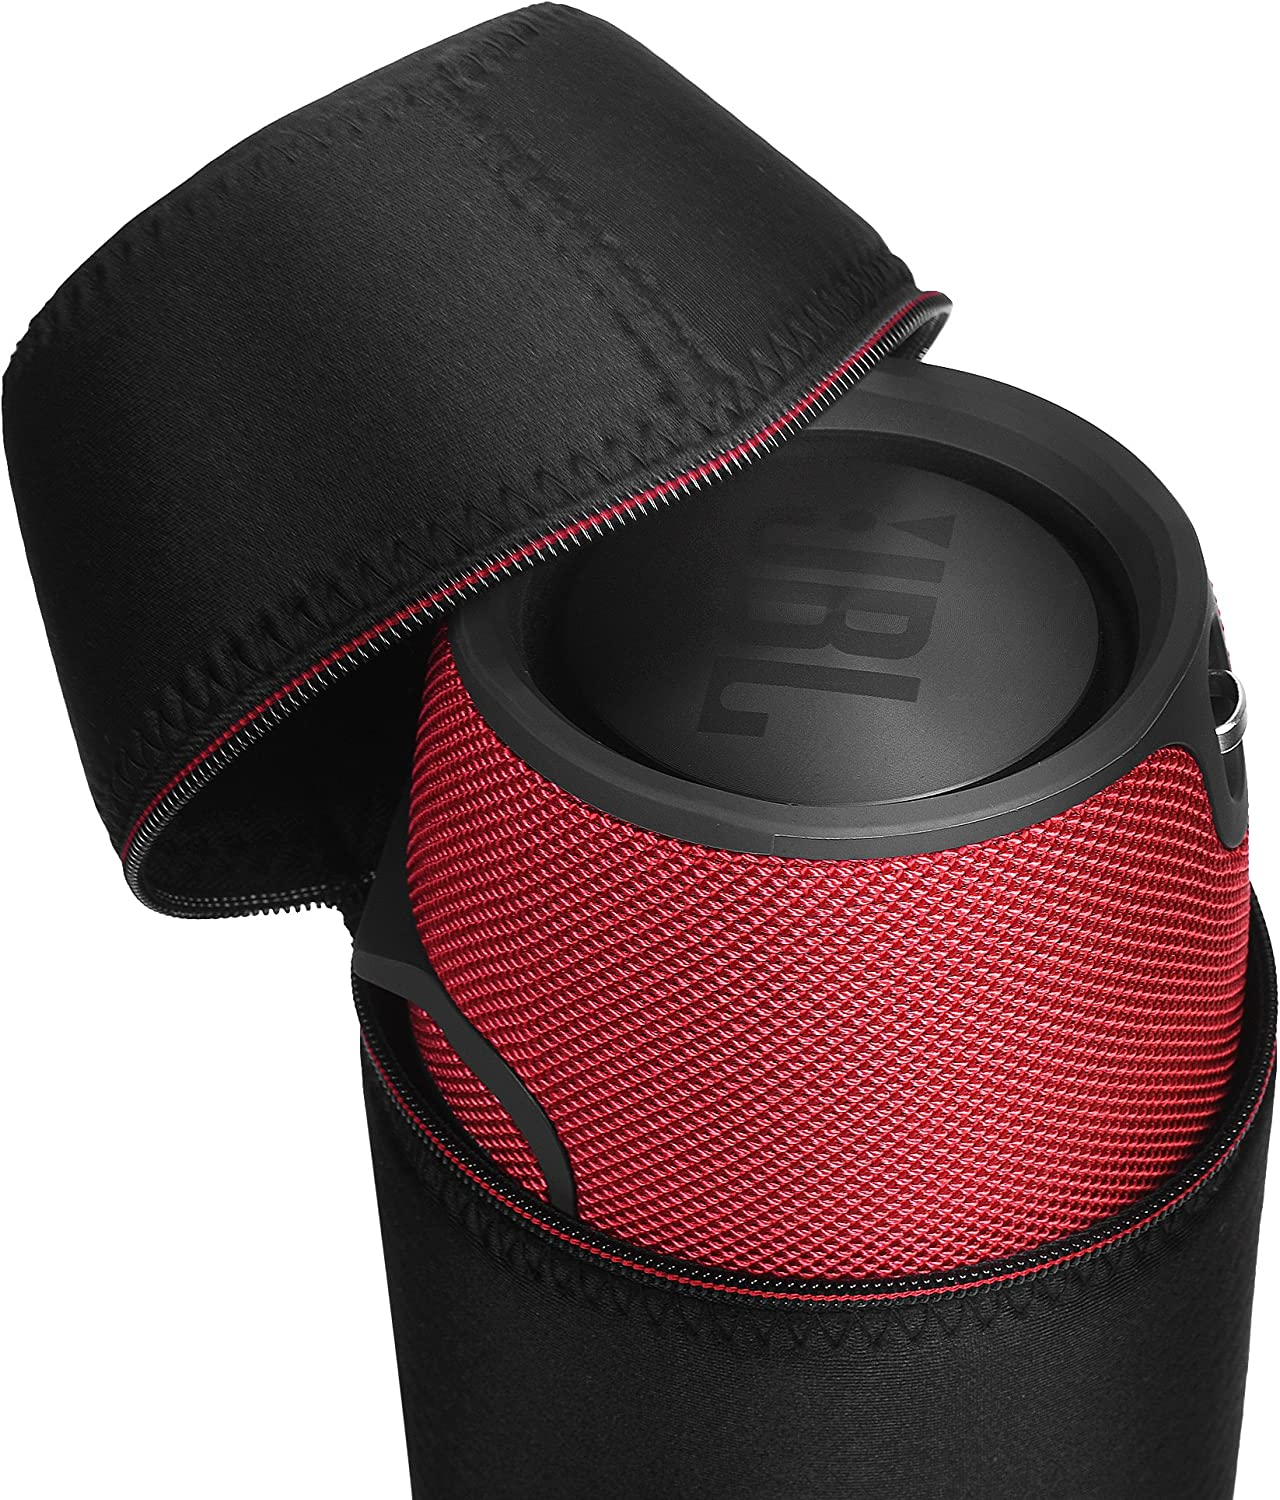 mini charge adaptor pouch Compatible with JBL Xtreme Portable Wireless Bluetooth speaker TXEsign Premium Neoprene Protection Carrying Case Bag with handle